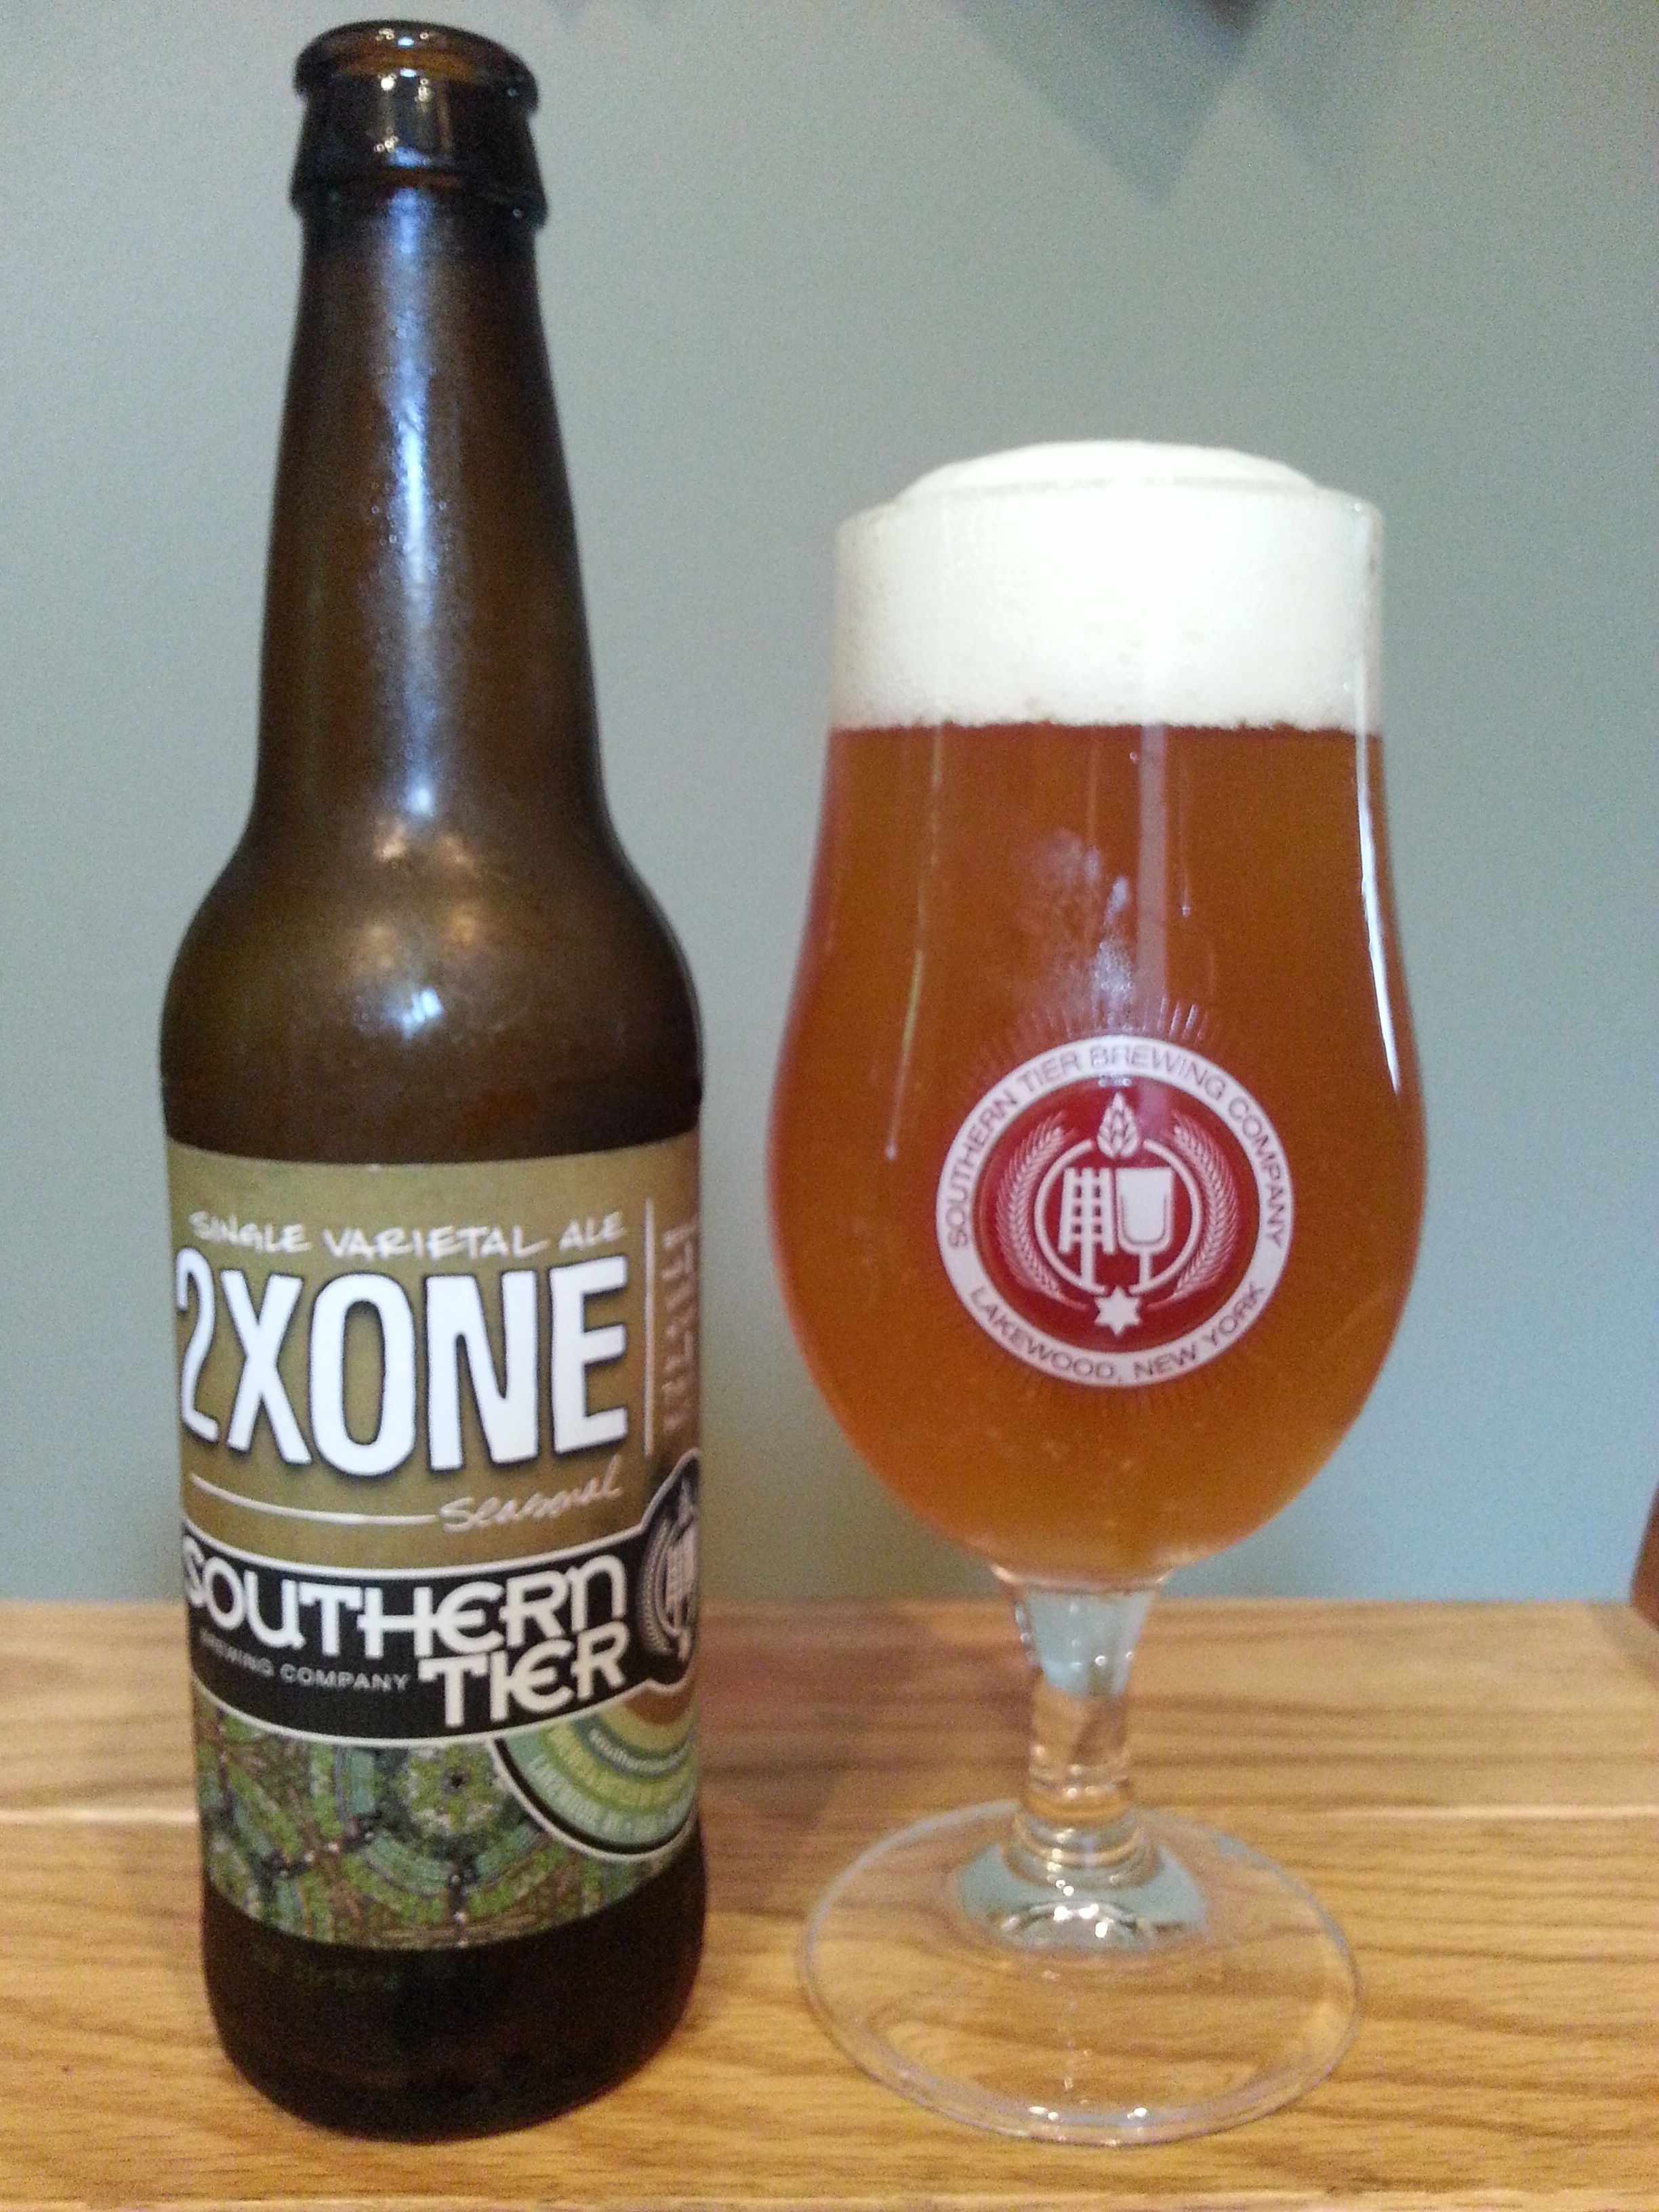 Southern Tier 2X One